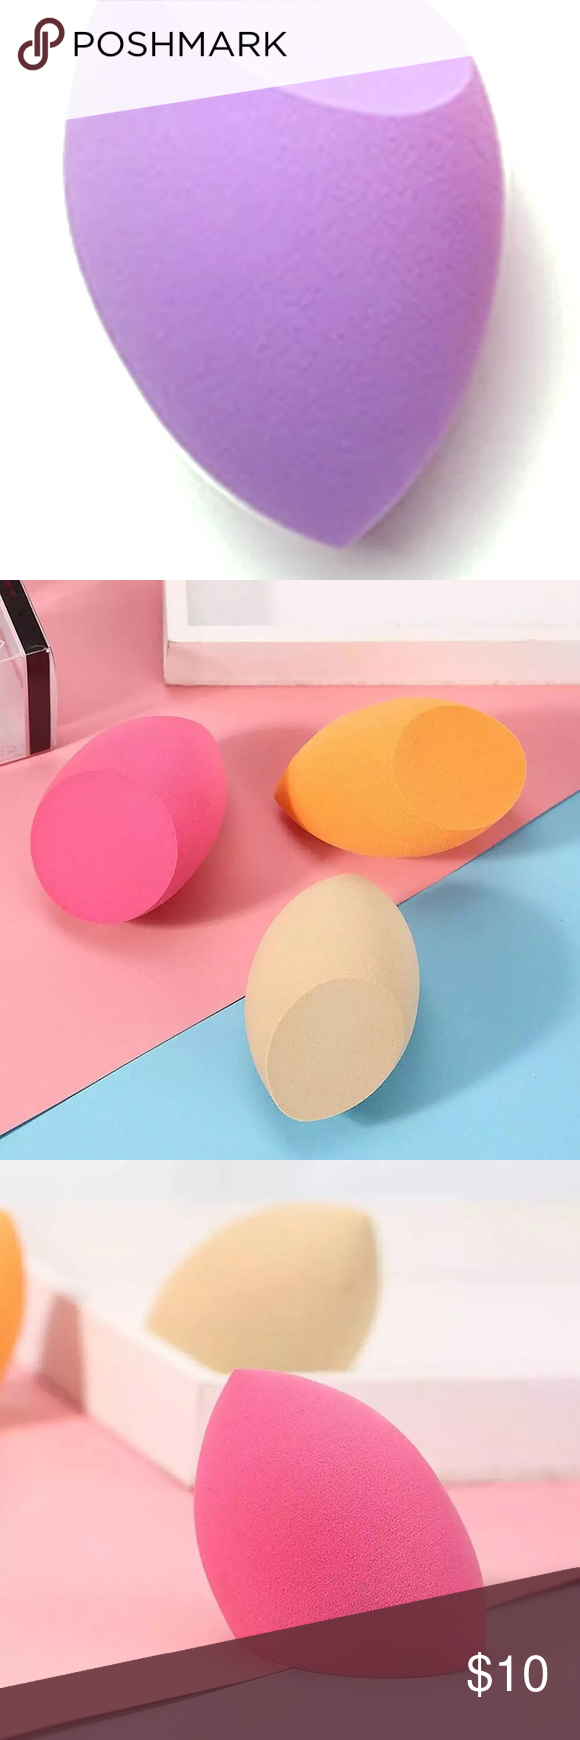 Makeup sponge applicator. Makeup sponge, It cosmetics